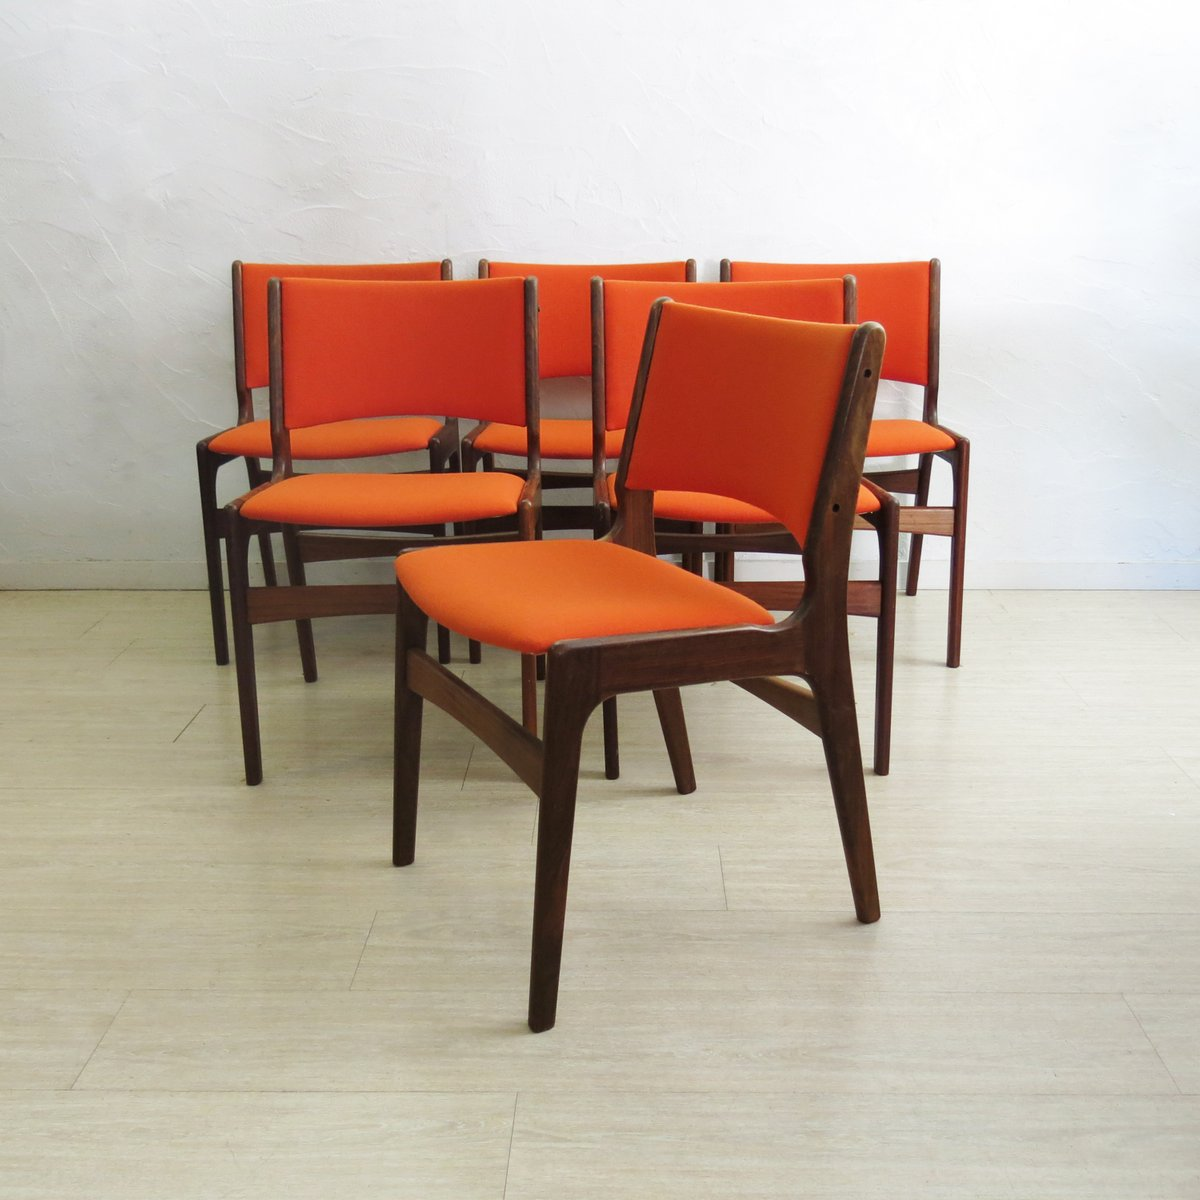 Mid Century Chairs For Sale: Mid-Century Teak Dining Chairs From Anderstrup, 1960s, Set